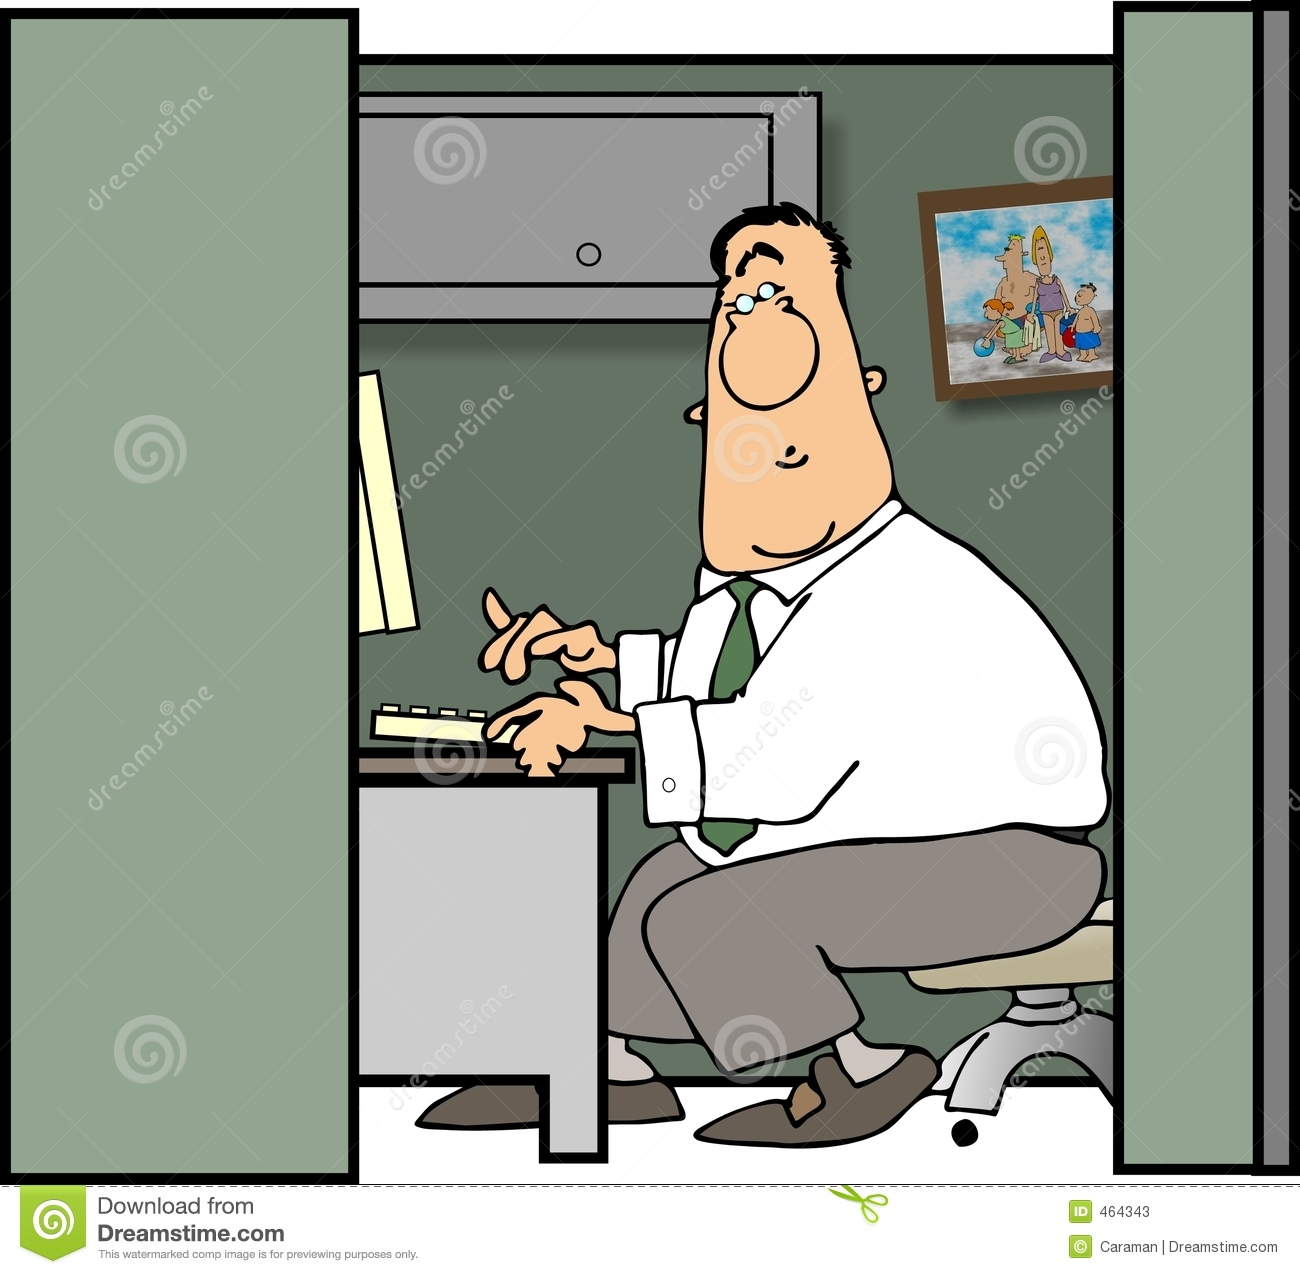 This illustration depicts a man working in a cubicle.